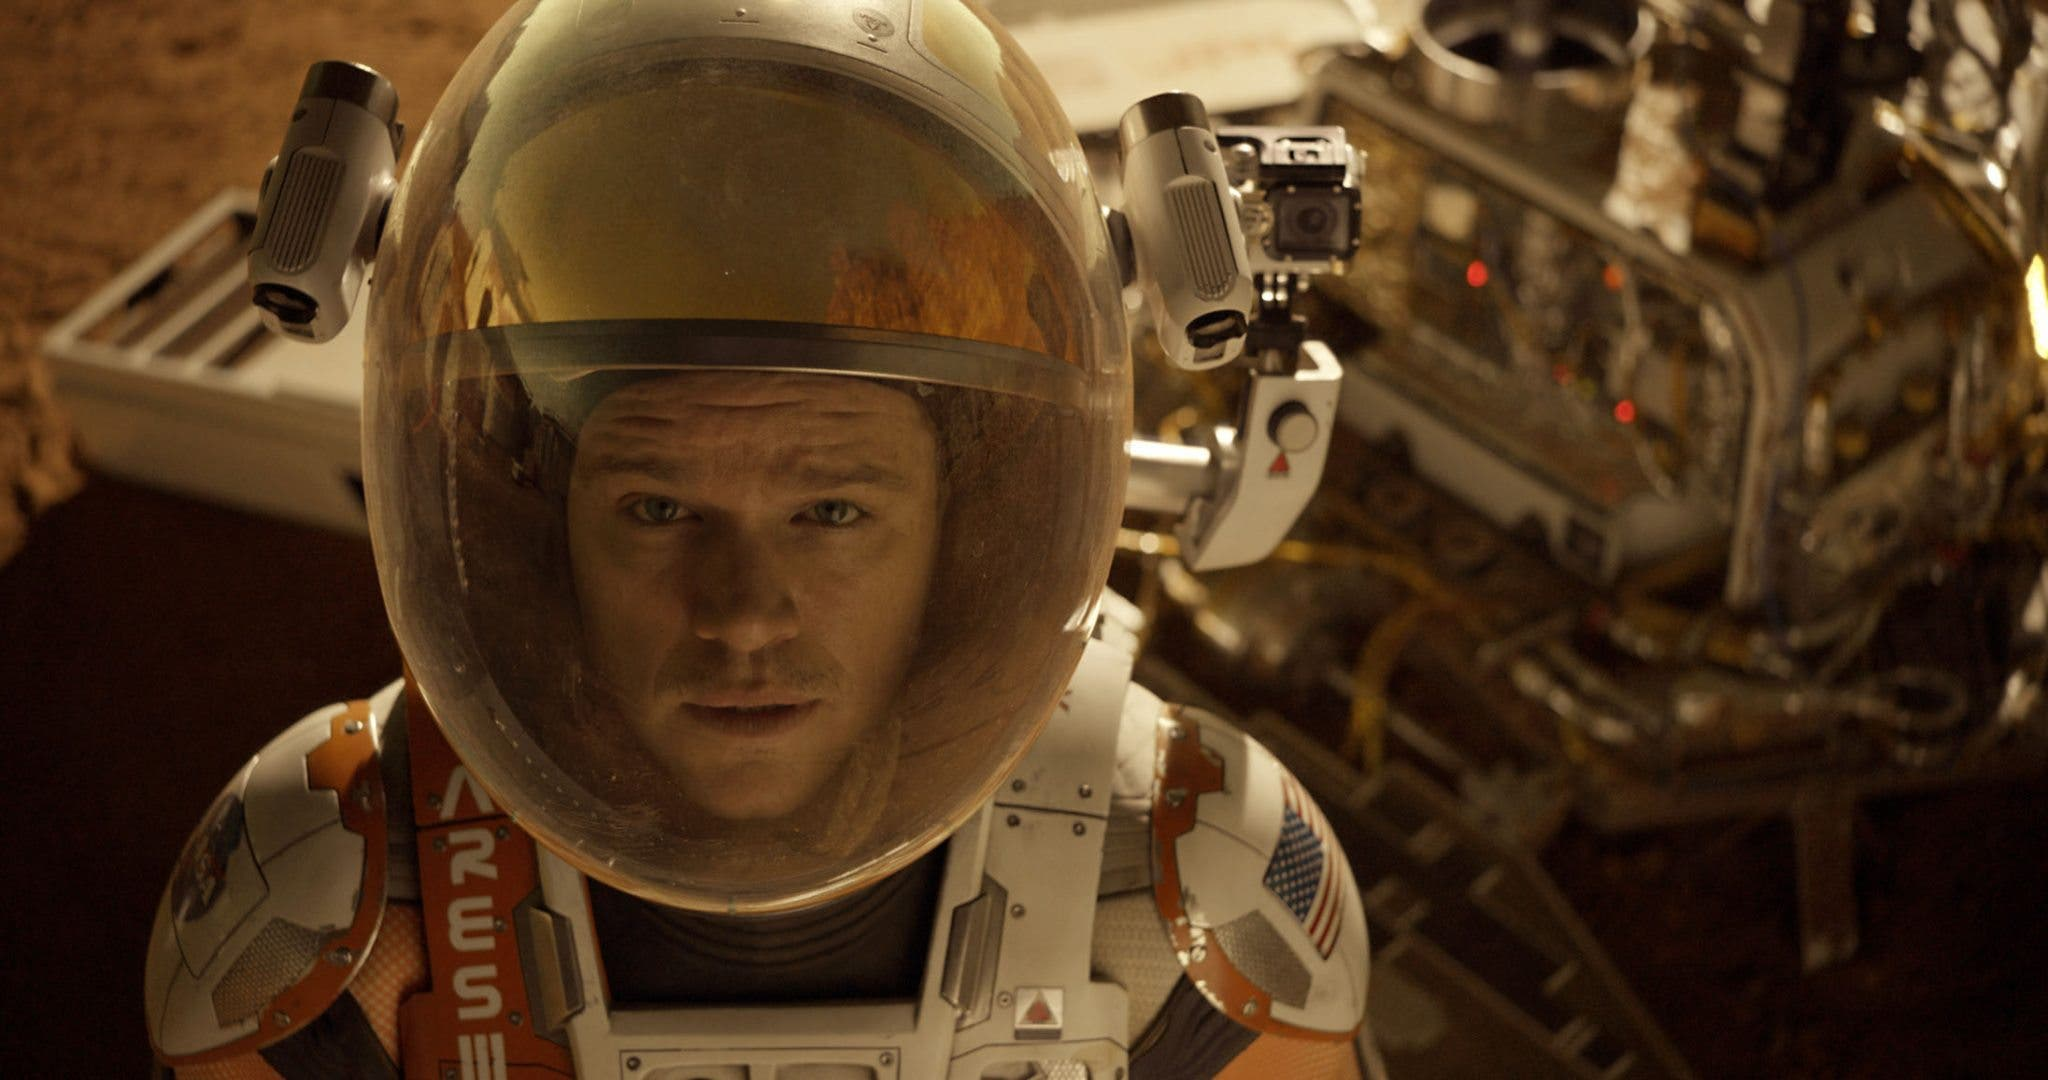 Matt Damon. Marte. The martian